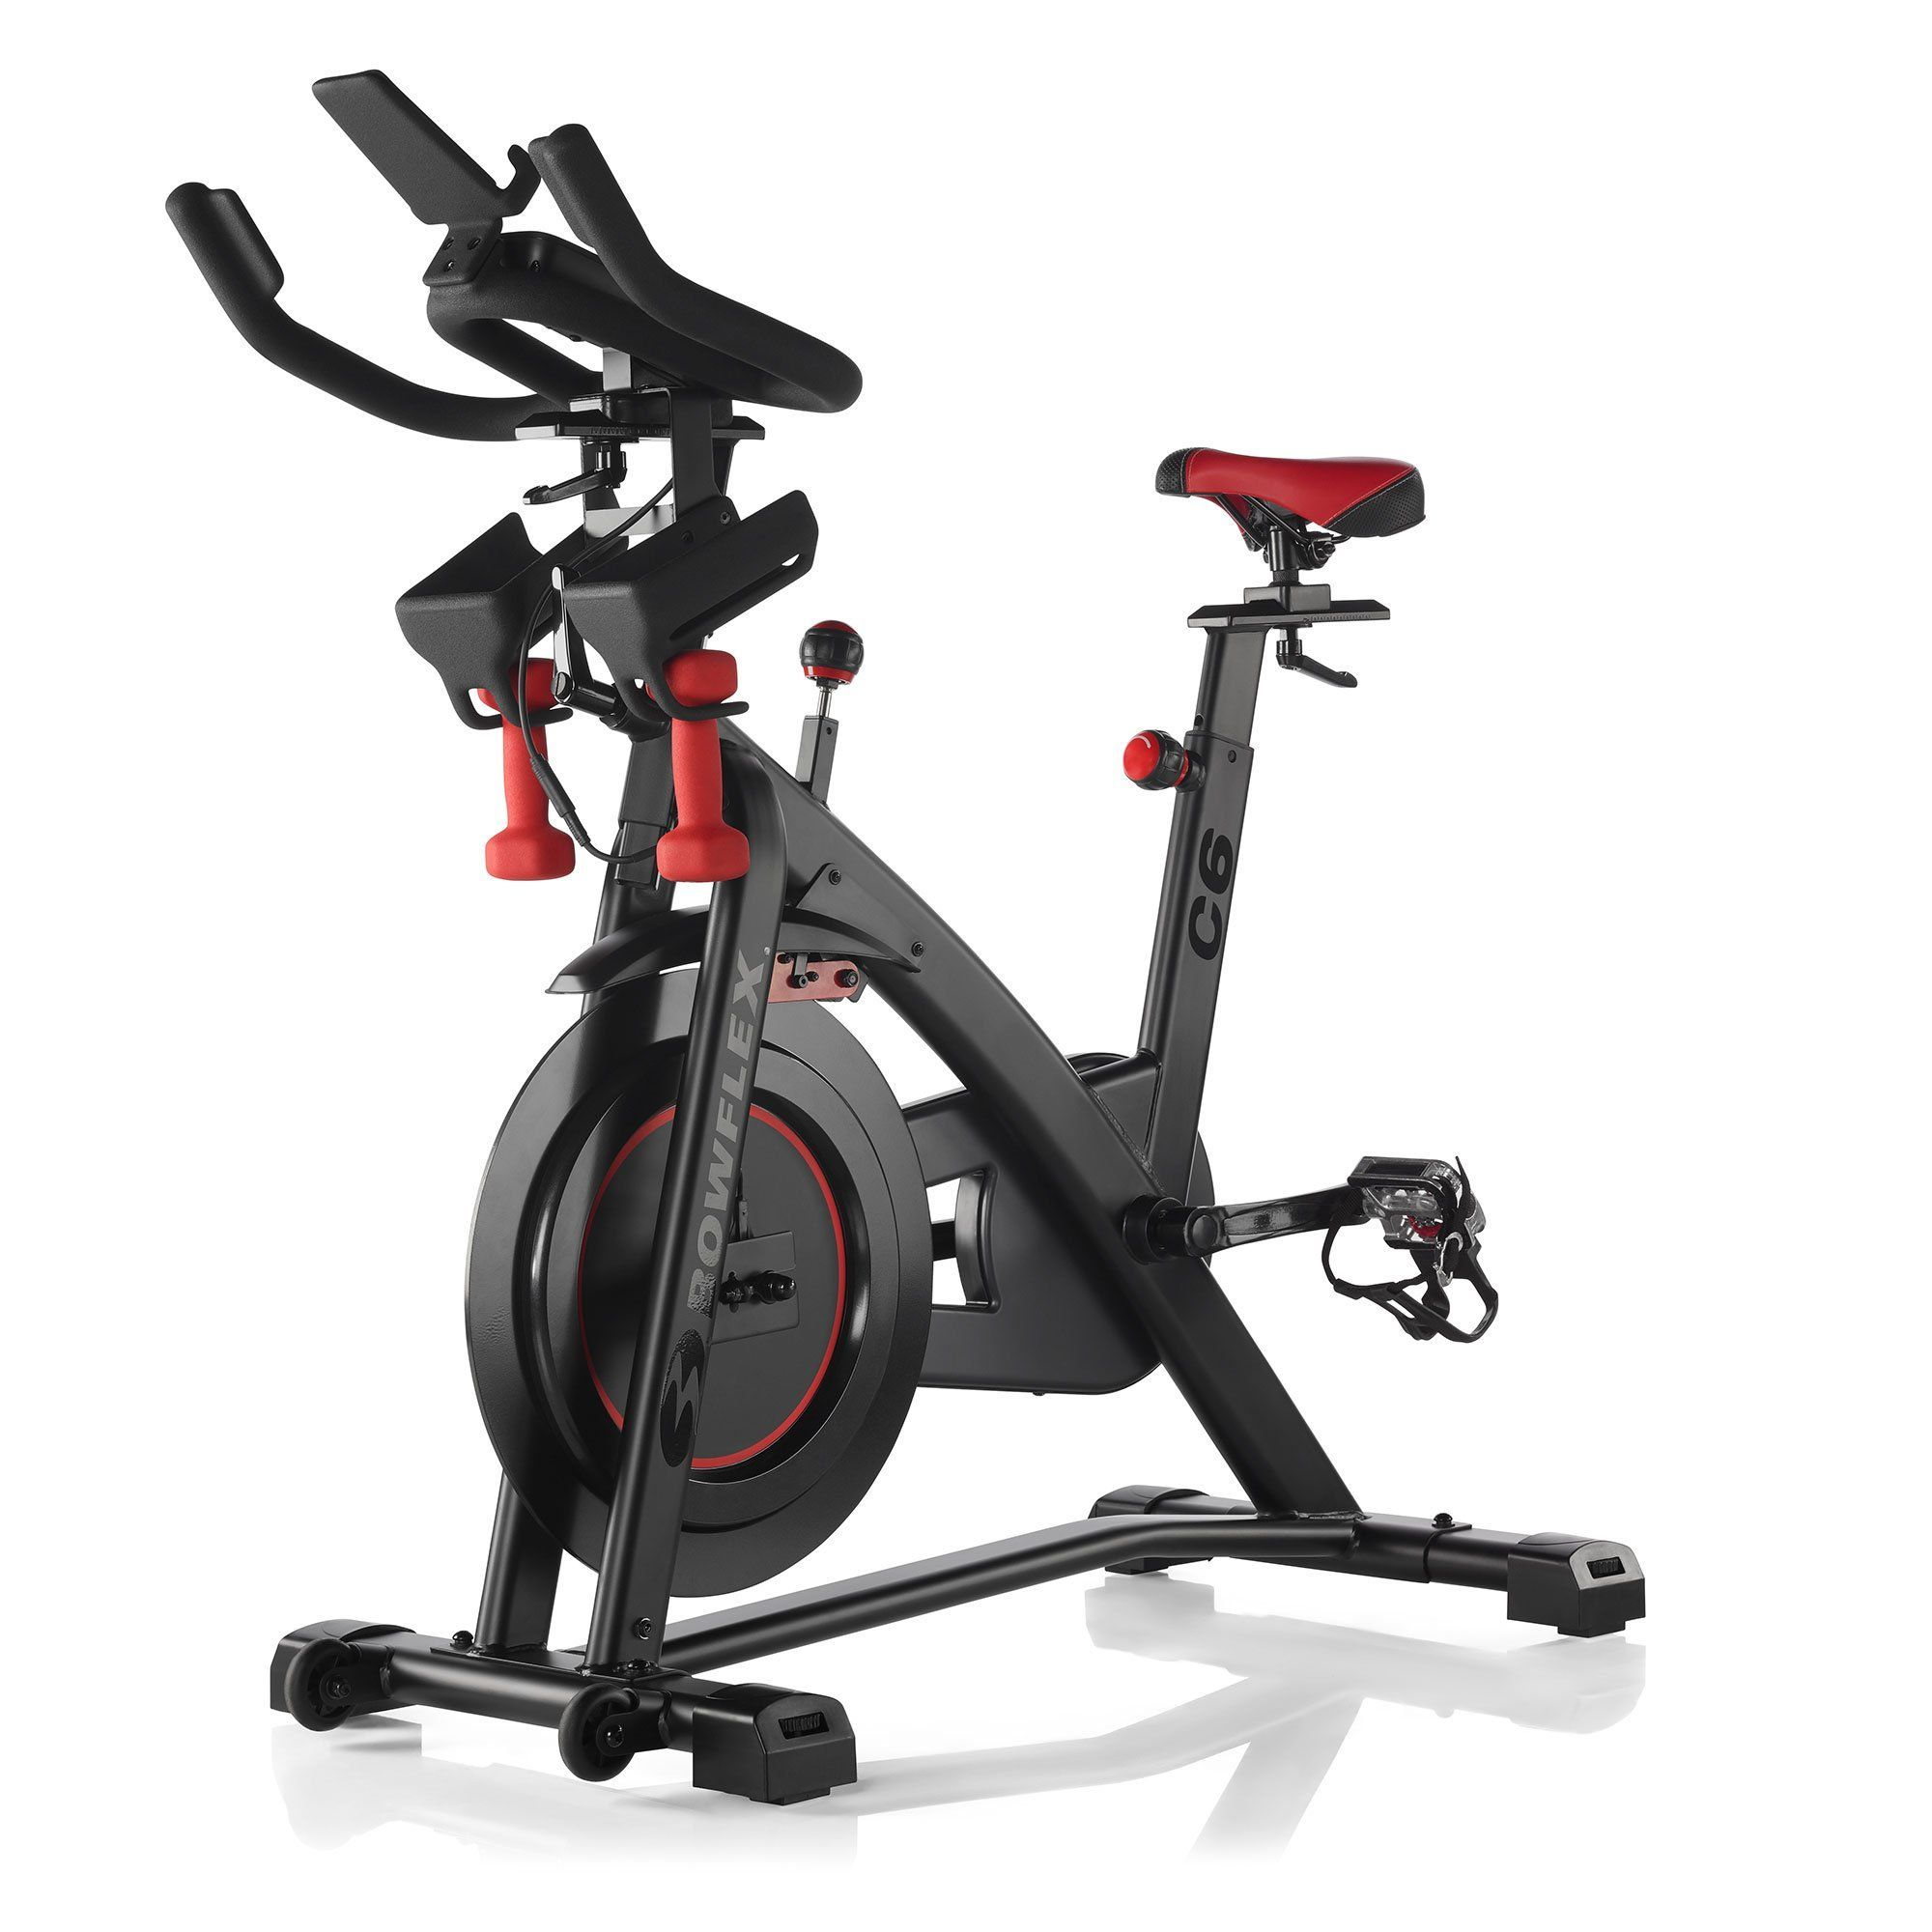 C6 Indoor Exercise Bike Indoor Bike Workouts Biking Workout Spin Bike Workouts